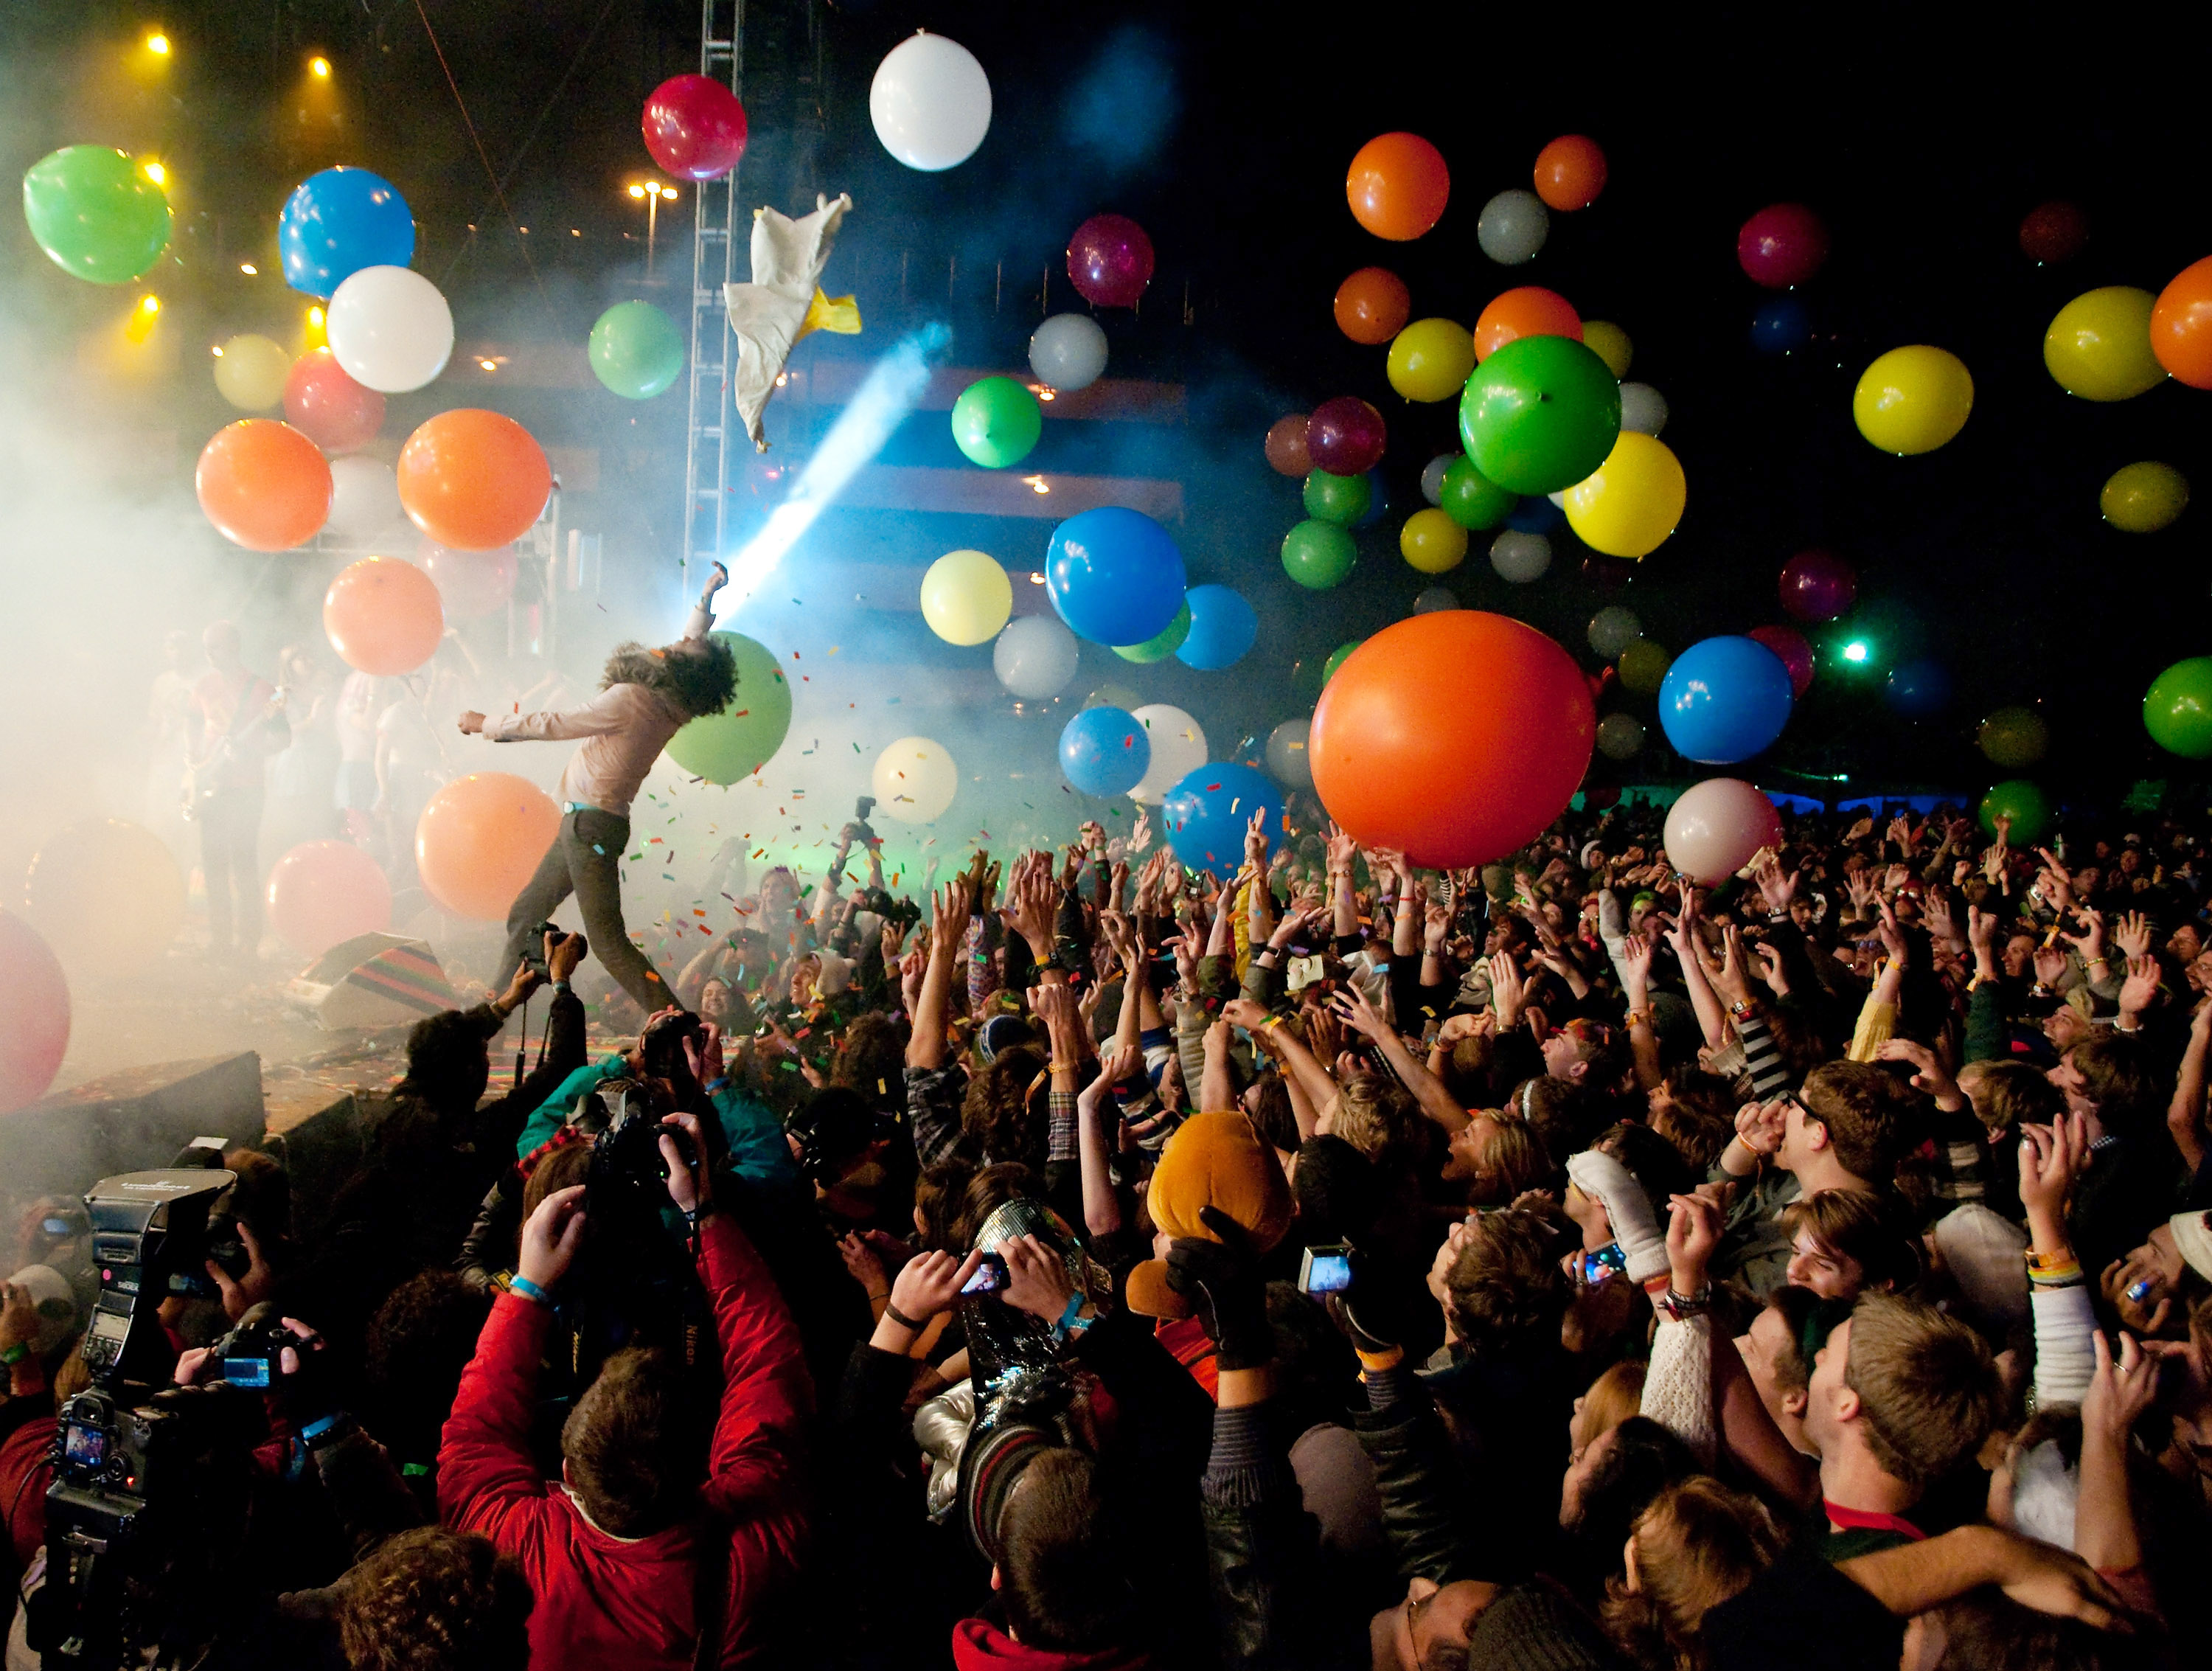 Wayne Coyne performs with The Flaming Lips during Moogfest 2011 at the Animoog Playground on October 29, 2011 in Asheville, North Carolina.